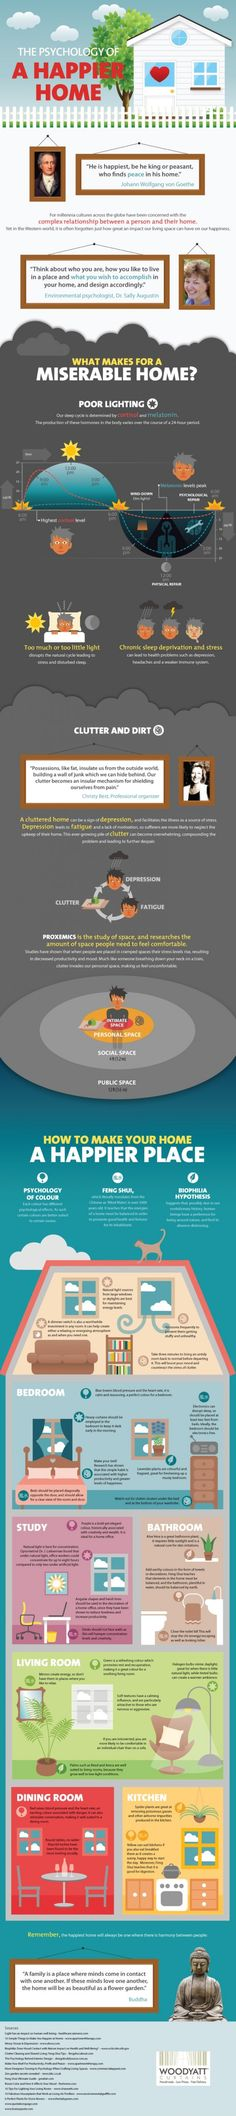 Psychology of a Happier Home Infographic Infographic